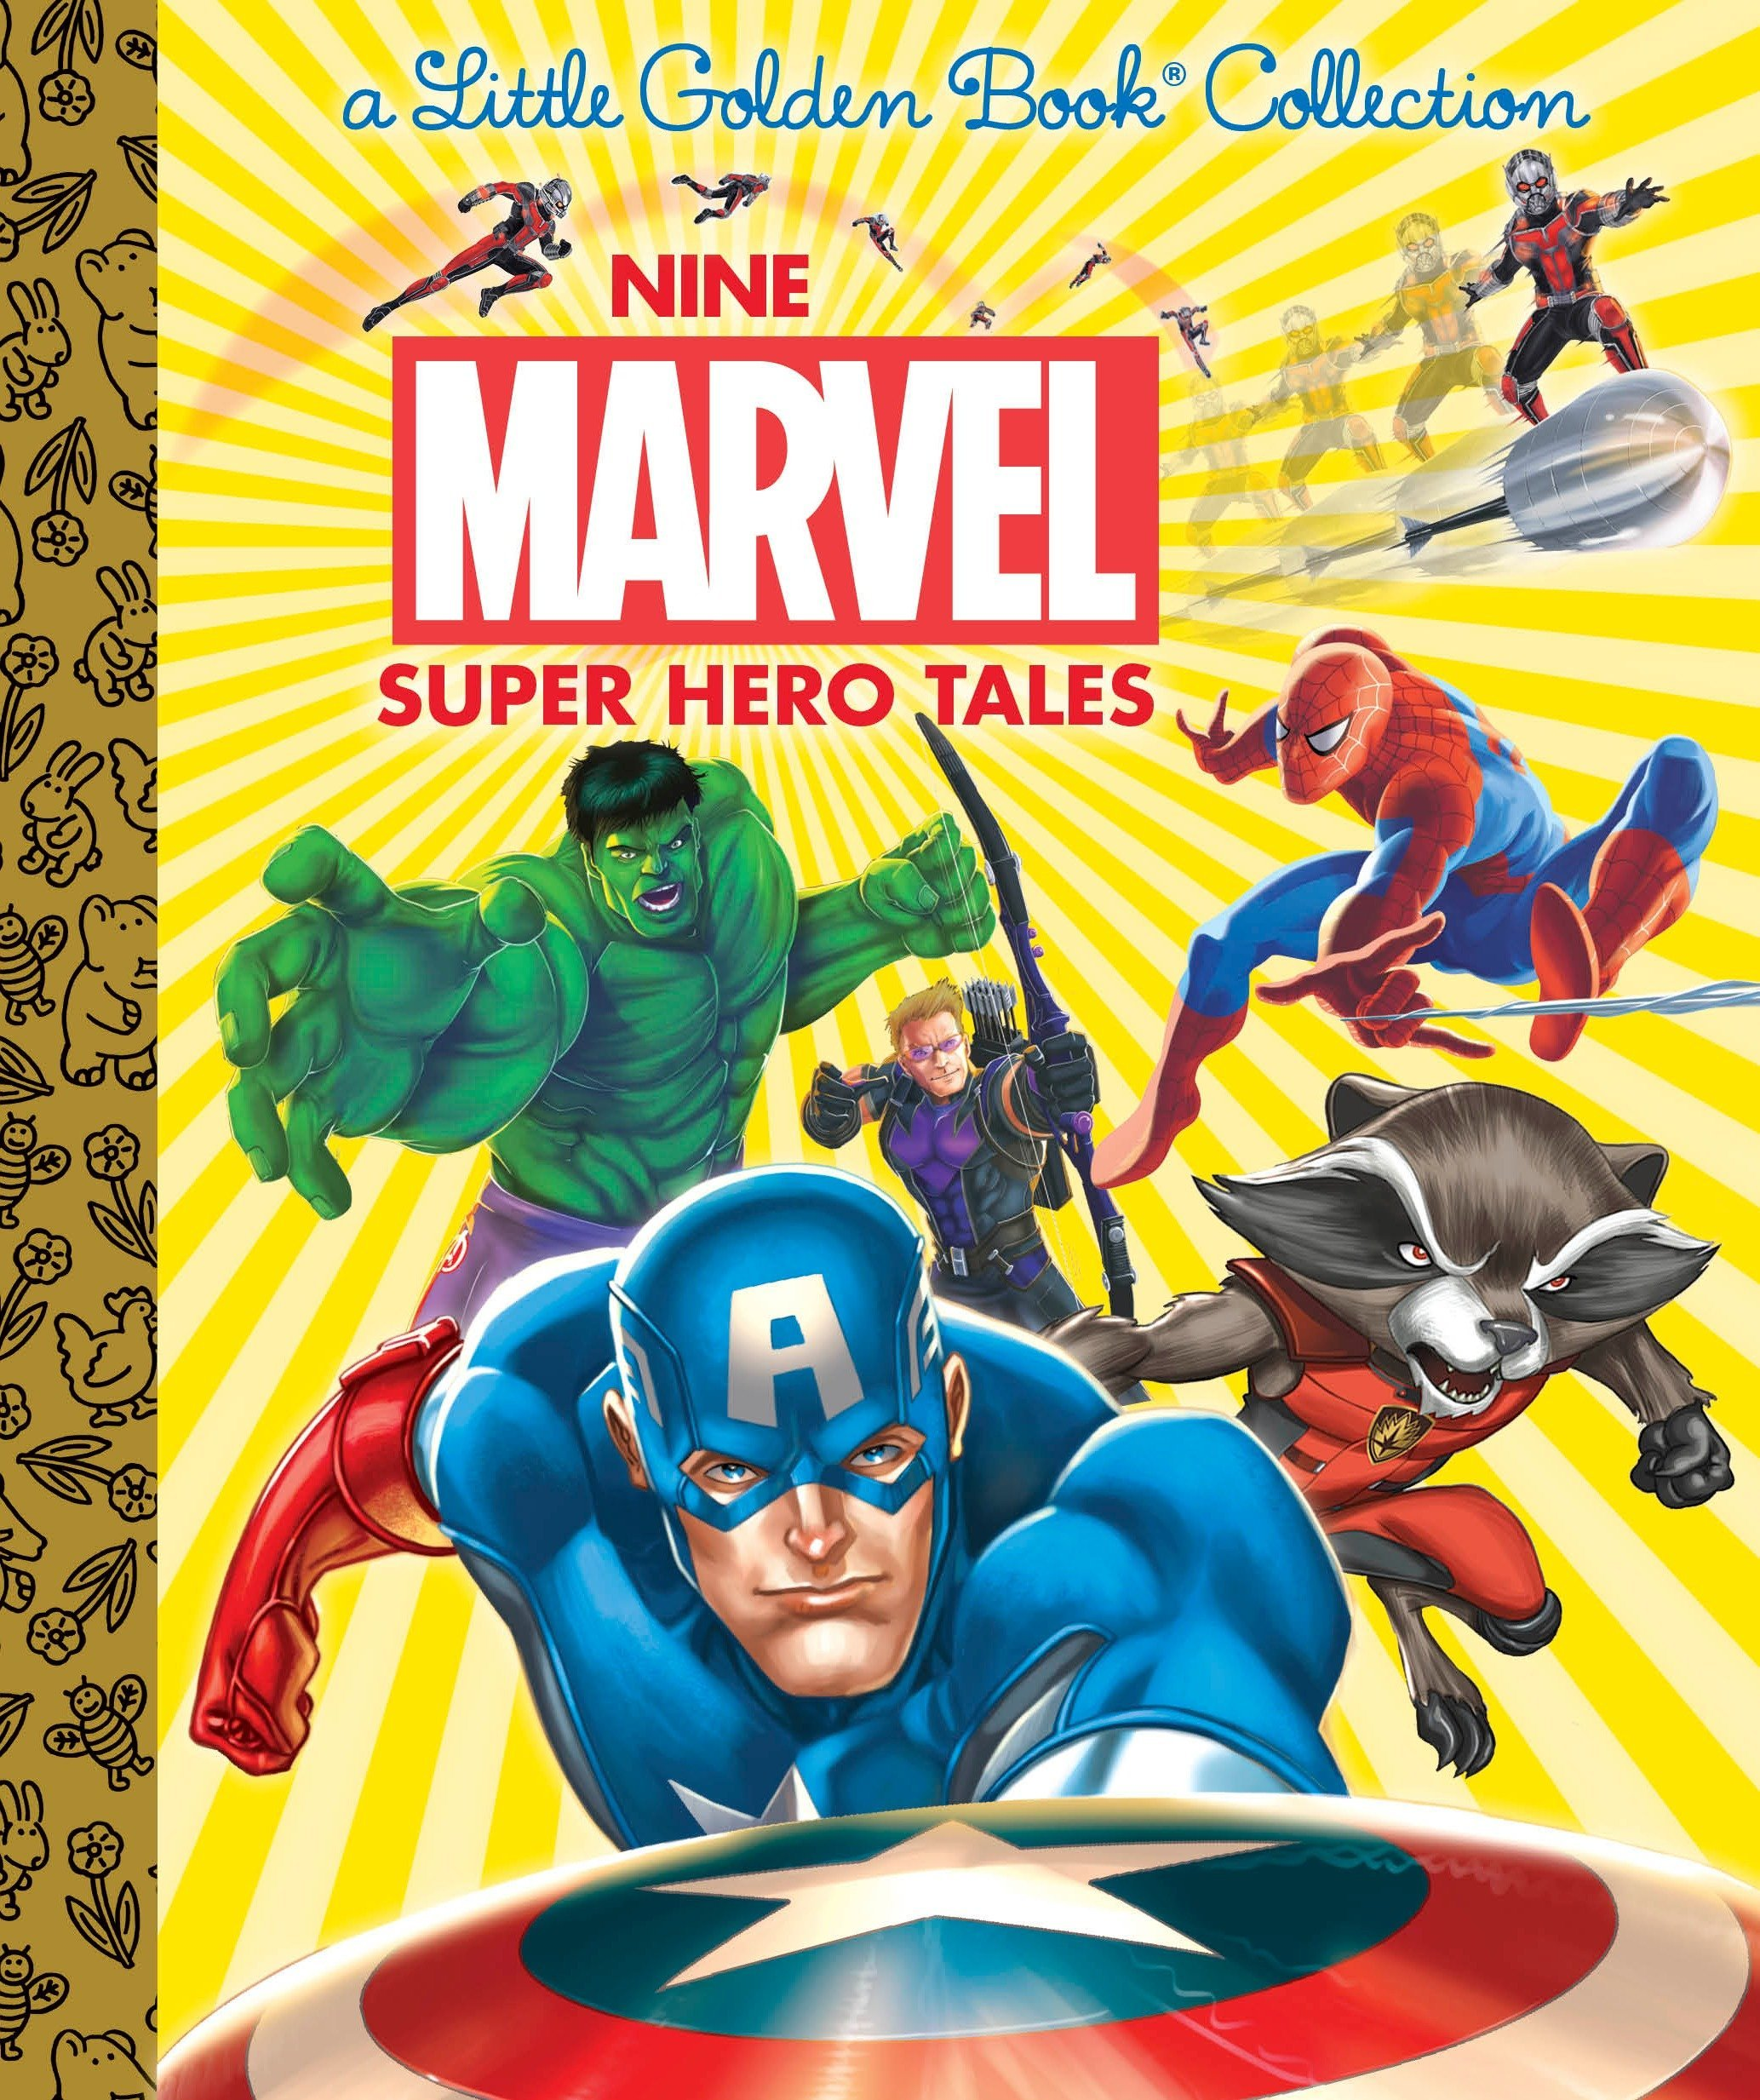 Nine Marvel Super Hero Tales (Inglese) Copertina rigida – 3 gen 2017 Frank Berrios Courtney Carbone Michael Borkowski Golden Books